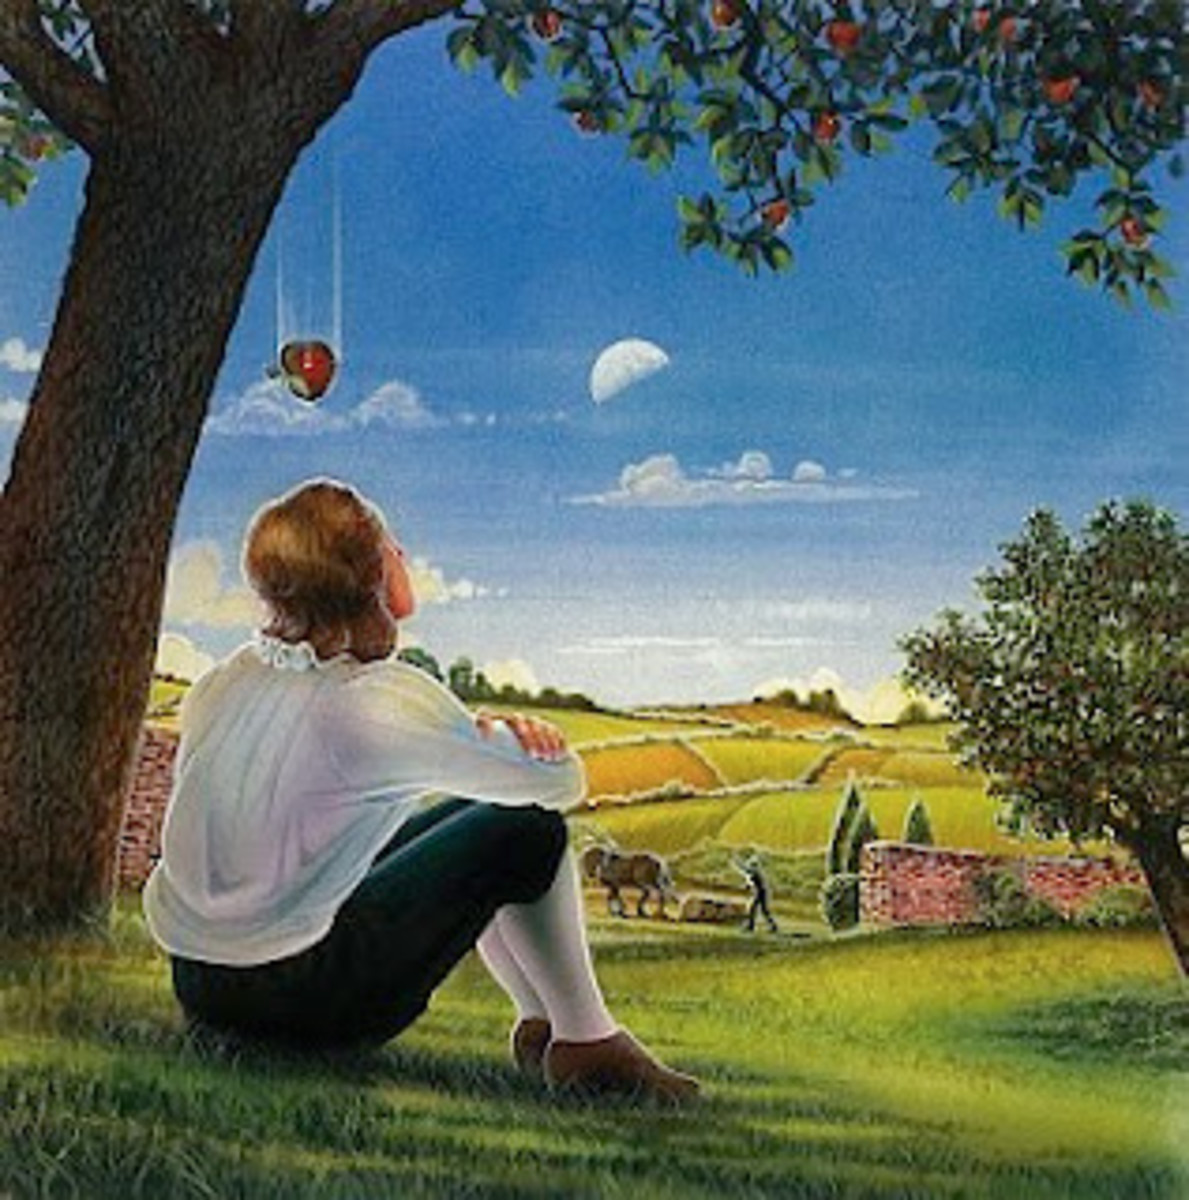 Isaac Newton was resting under a tree when an apple fell on his head. This led hime to discover the law of gravity.